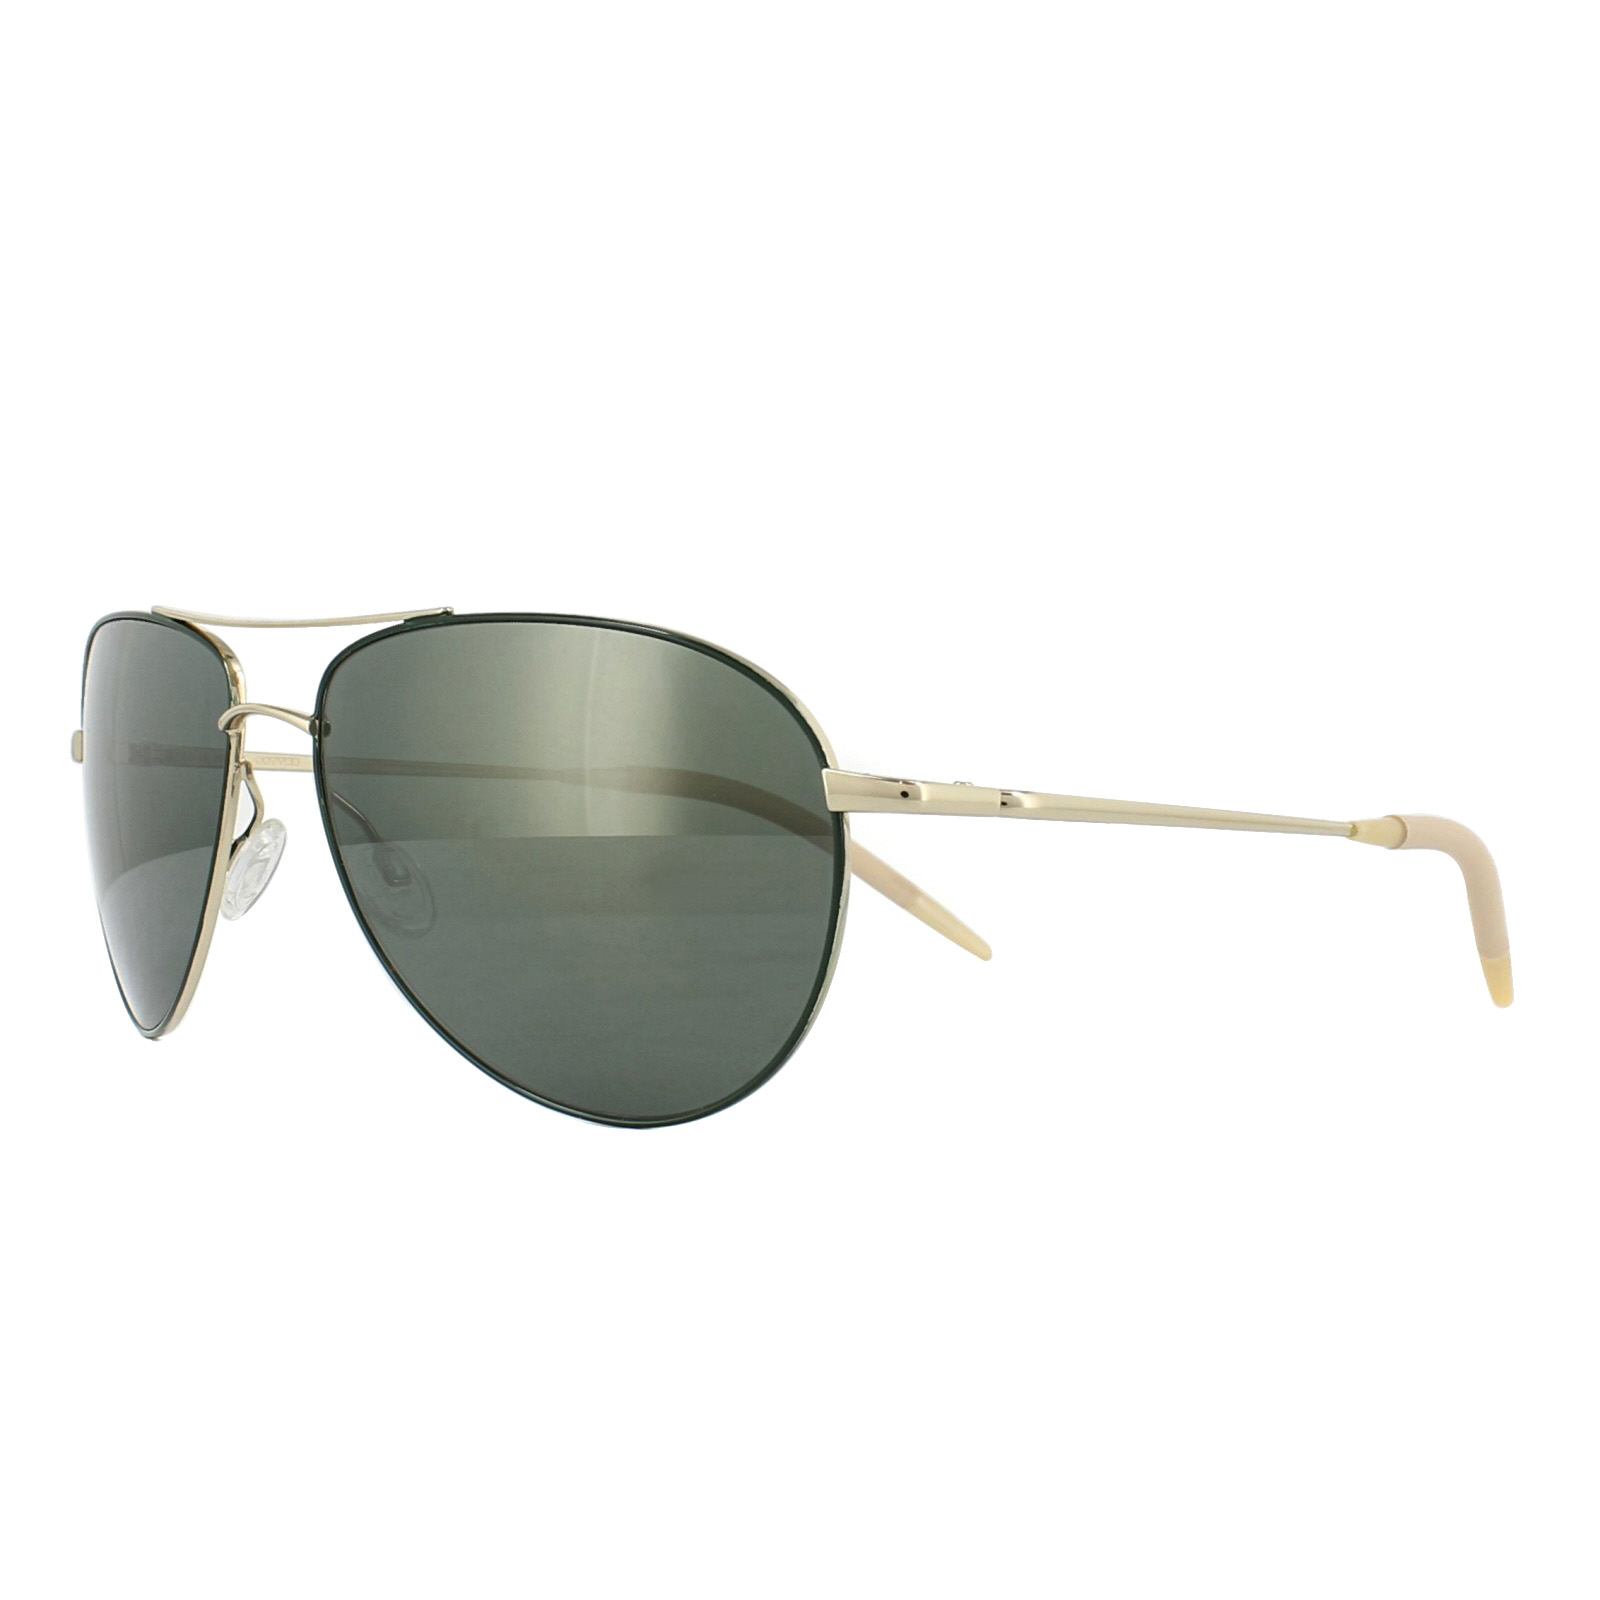 6c8f974c201 Sentinel Oliver Peoples Sunglasses Benedict 1002 5035O9 Gold Green G-15 VFX Polarized  59